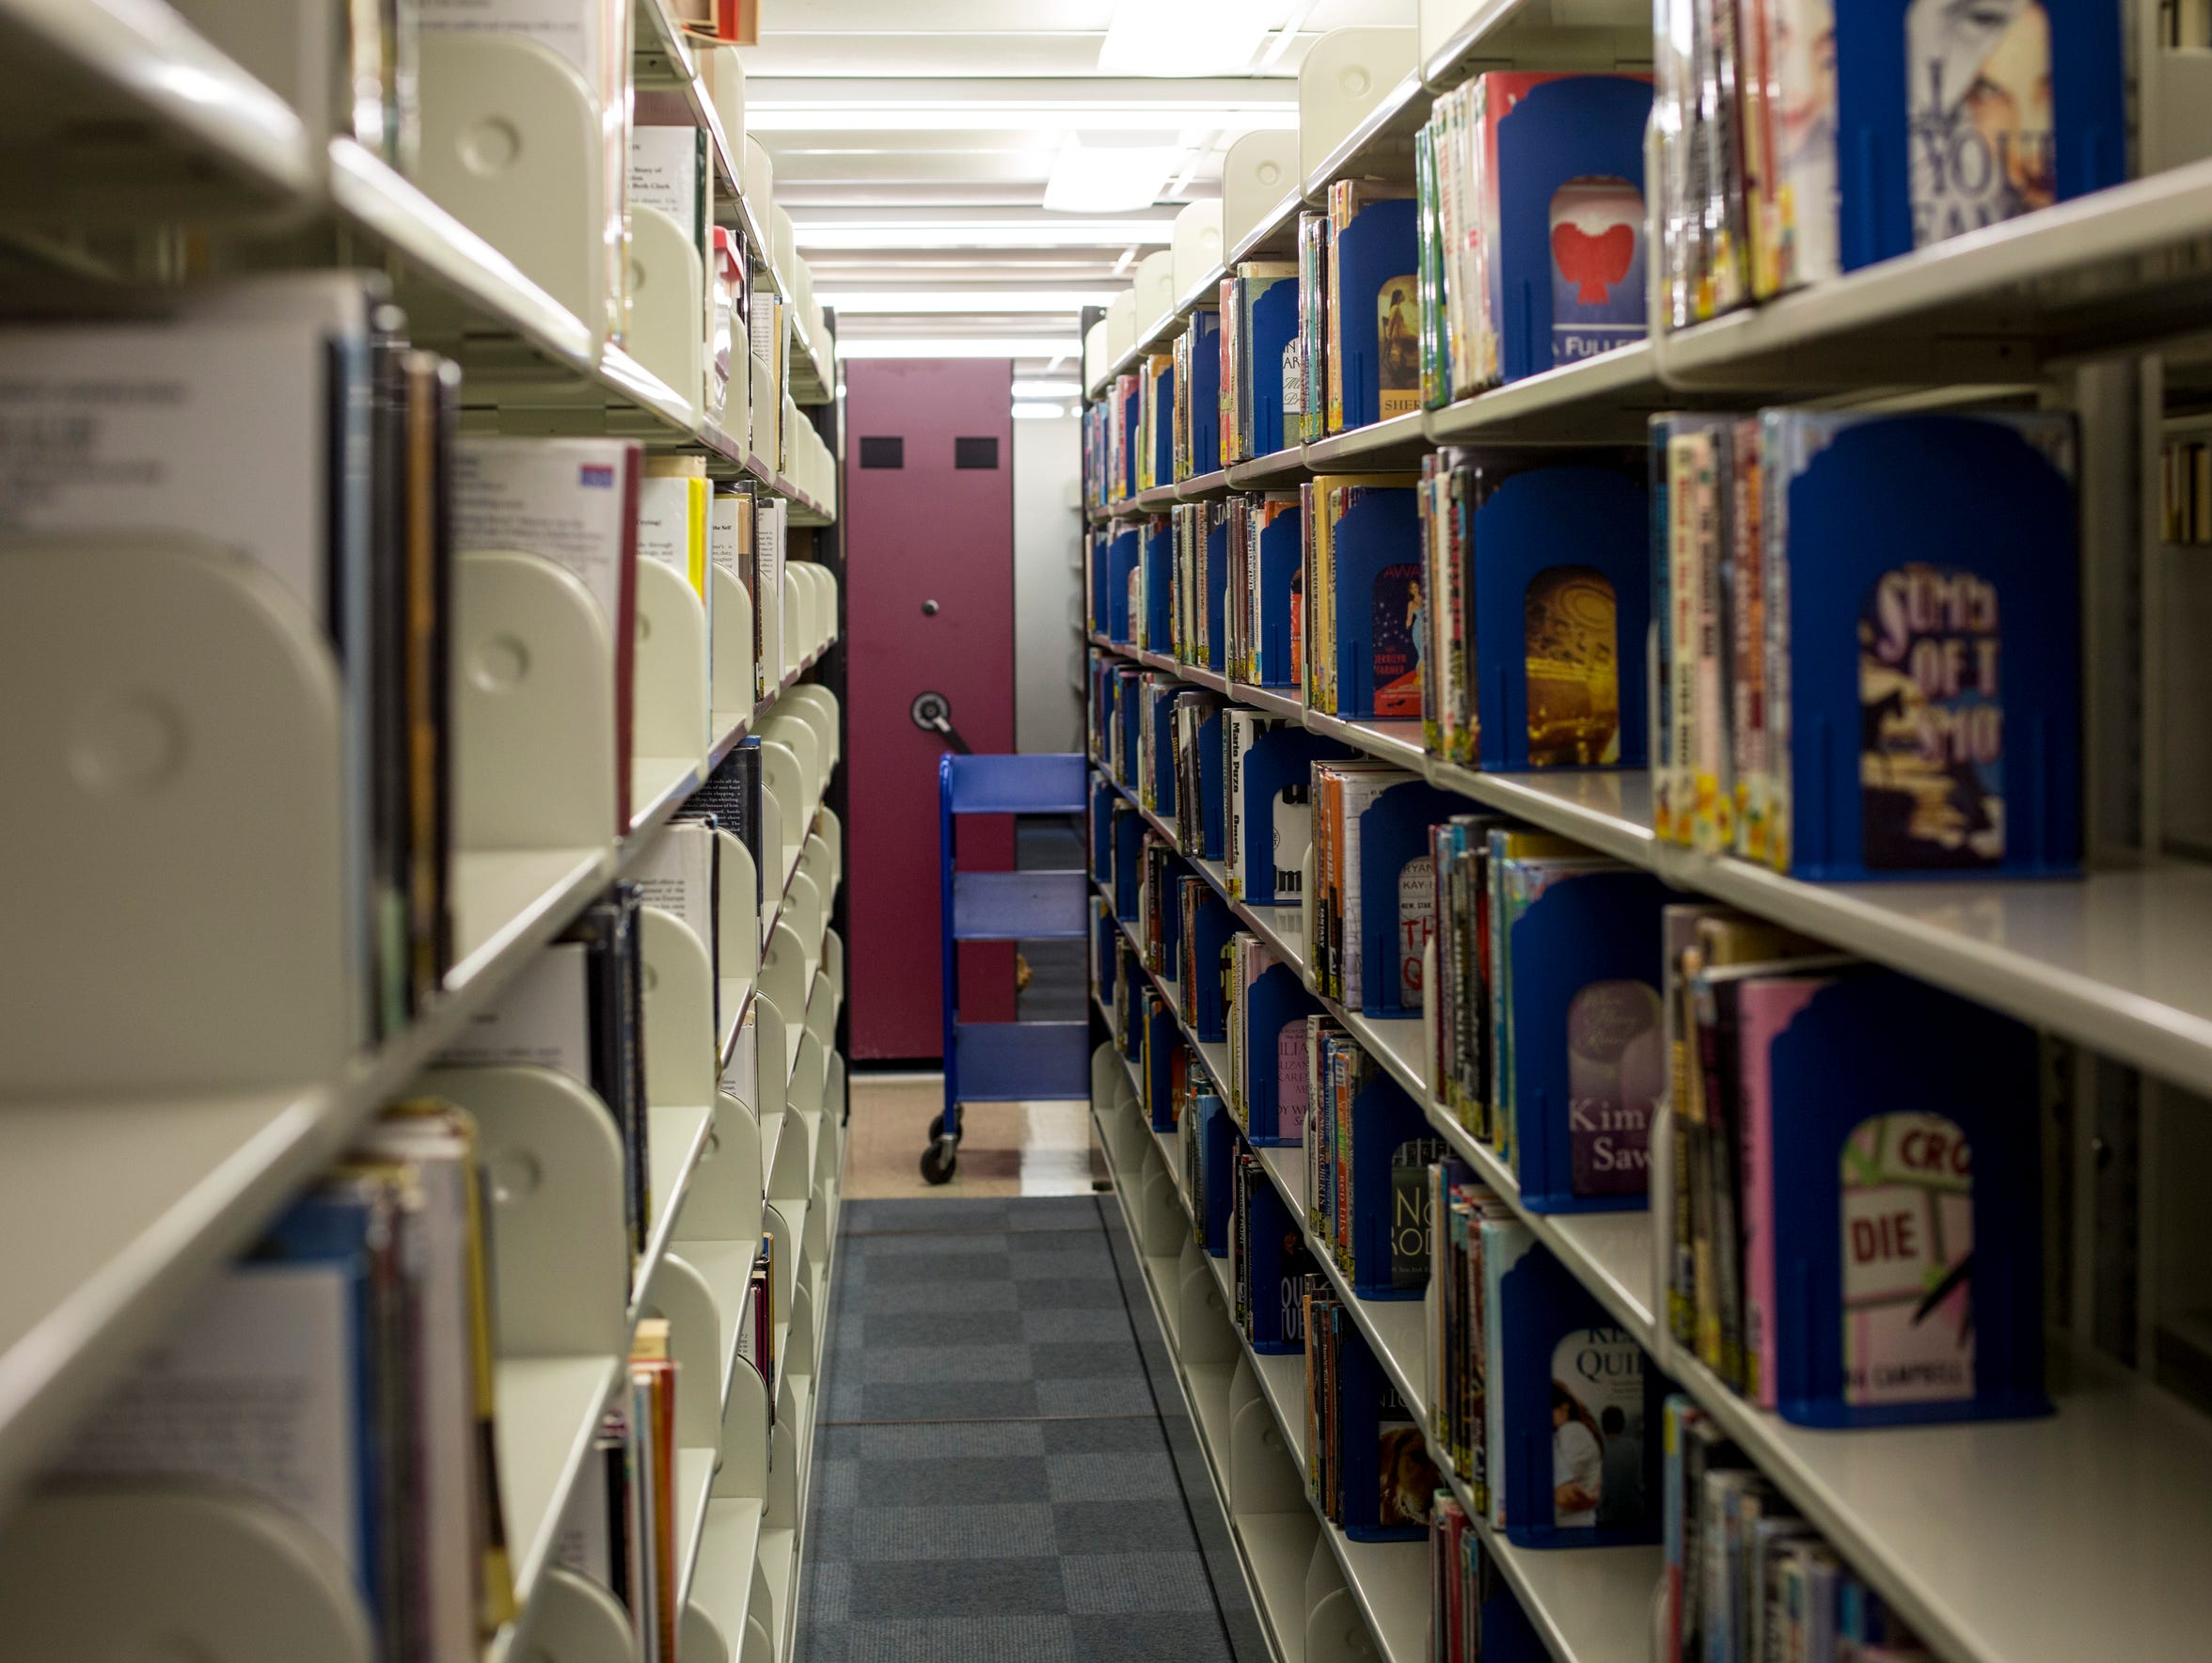 Books line the shelves in the basement at the St. Clair